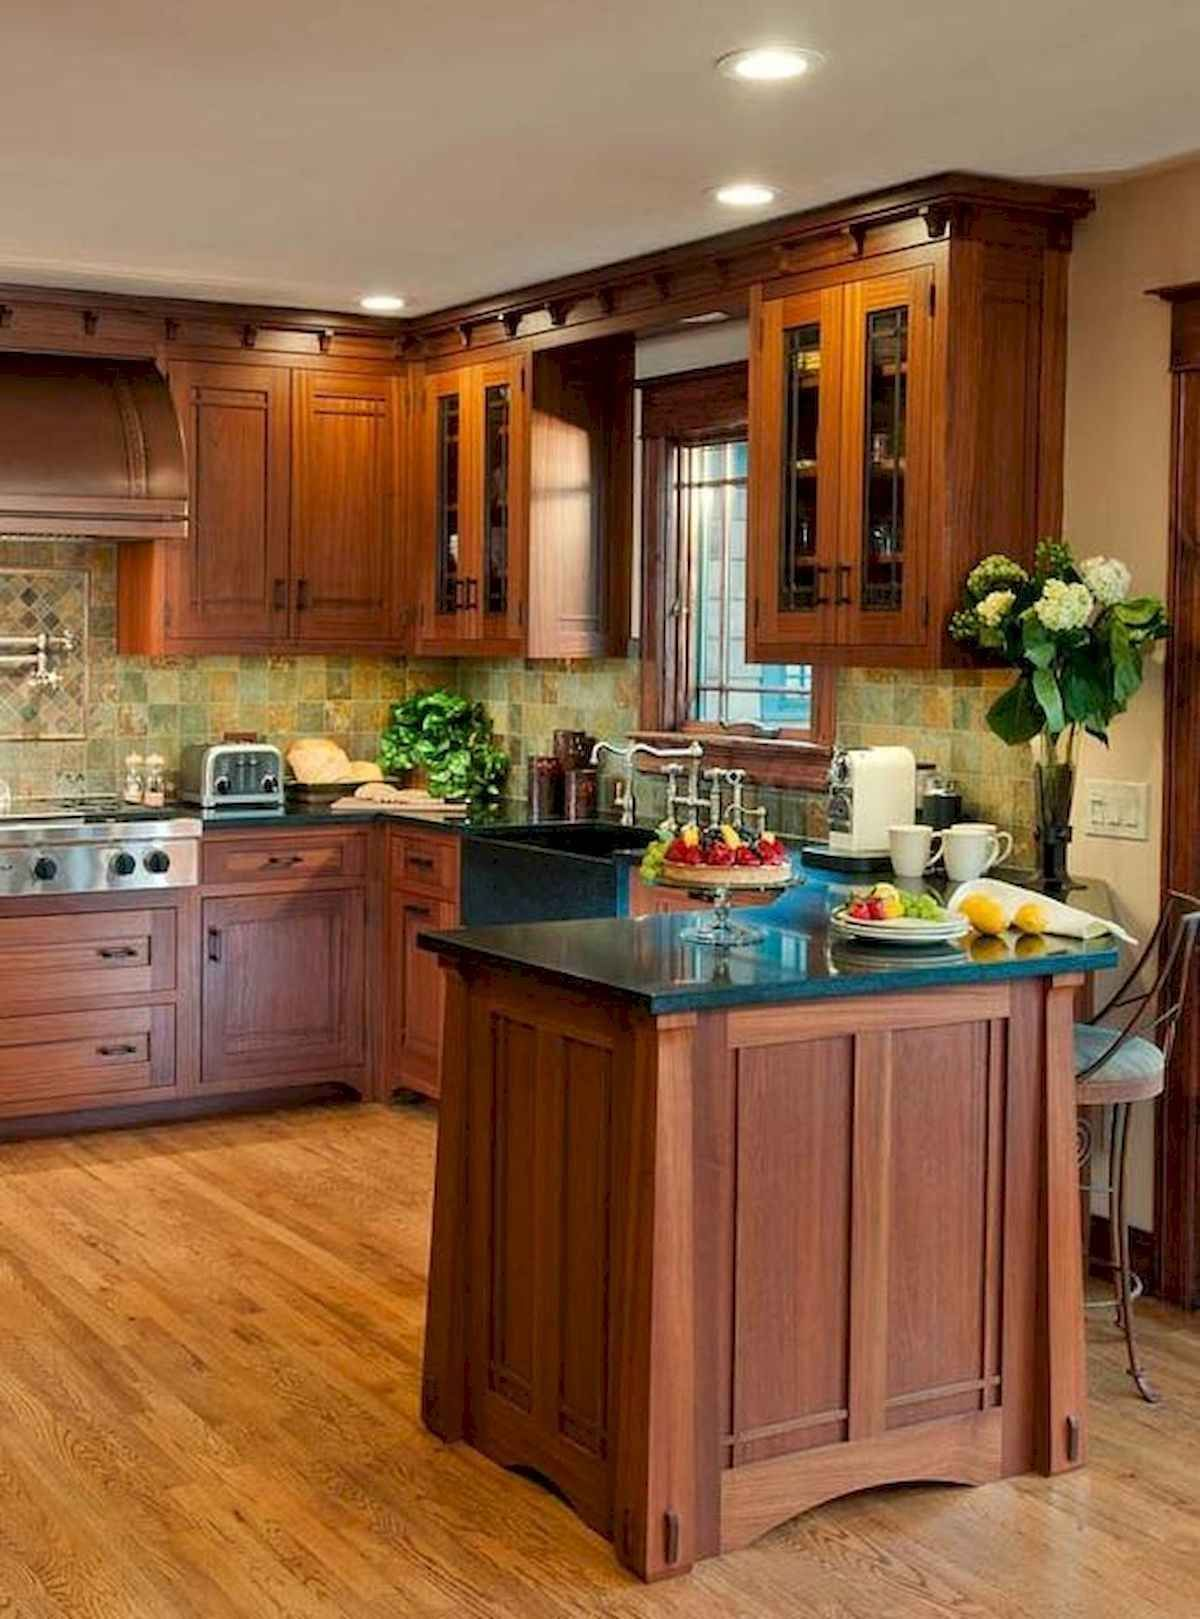 40 awesome craftsman style kitchen design ideas kitchen remodel small diy kitchen renovation on kitchen remodel ideas id=79328